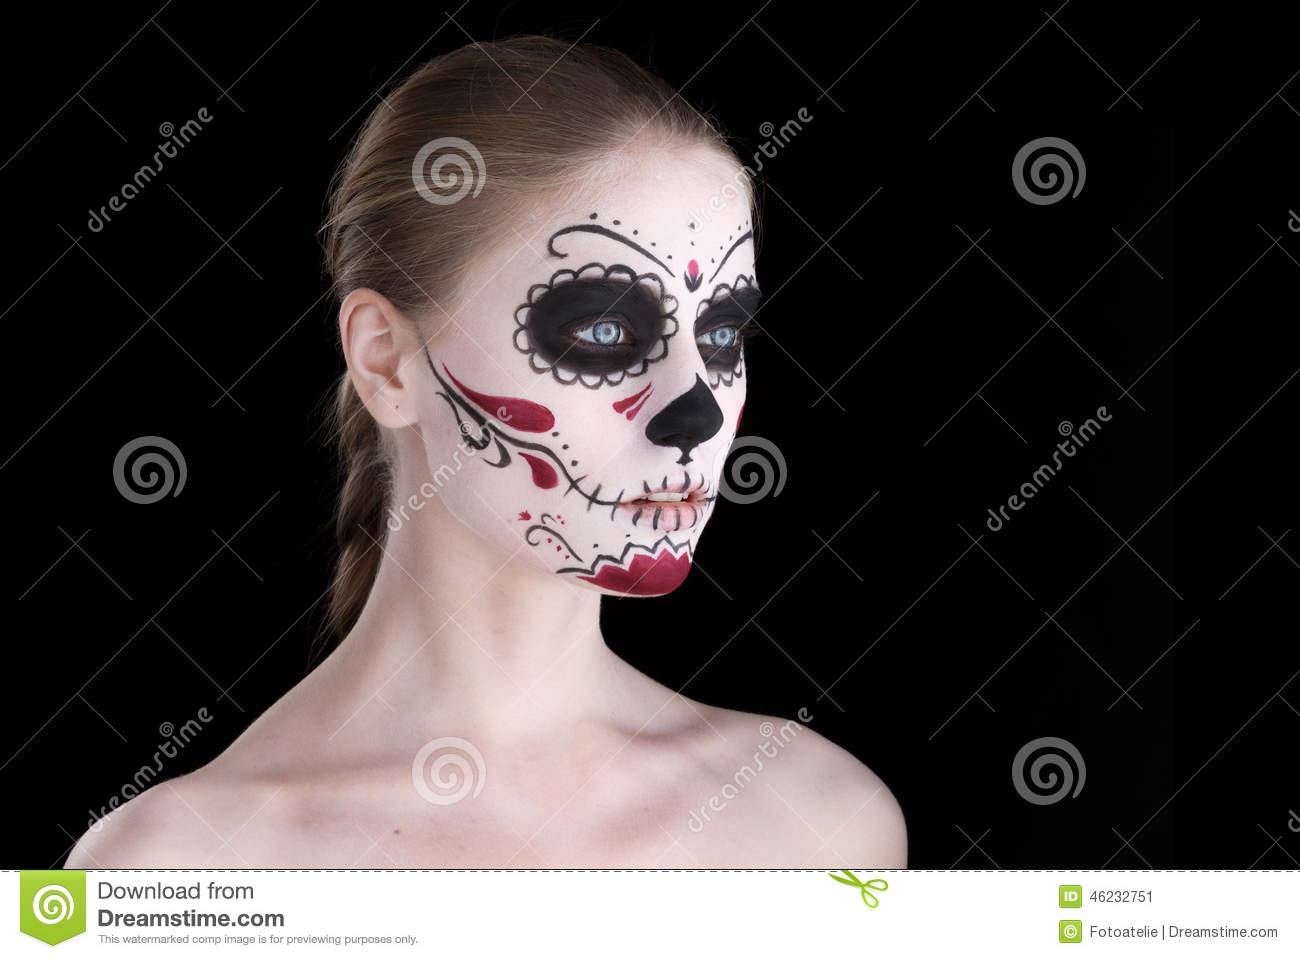 woman with dia de los muertos makeup black empty space. Black Bedroom Furniture Sets. Home Design Ideas